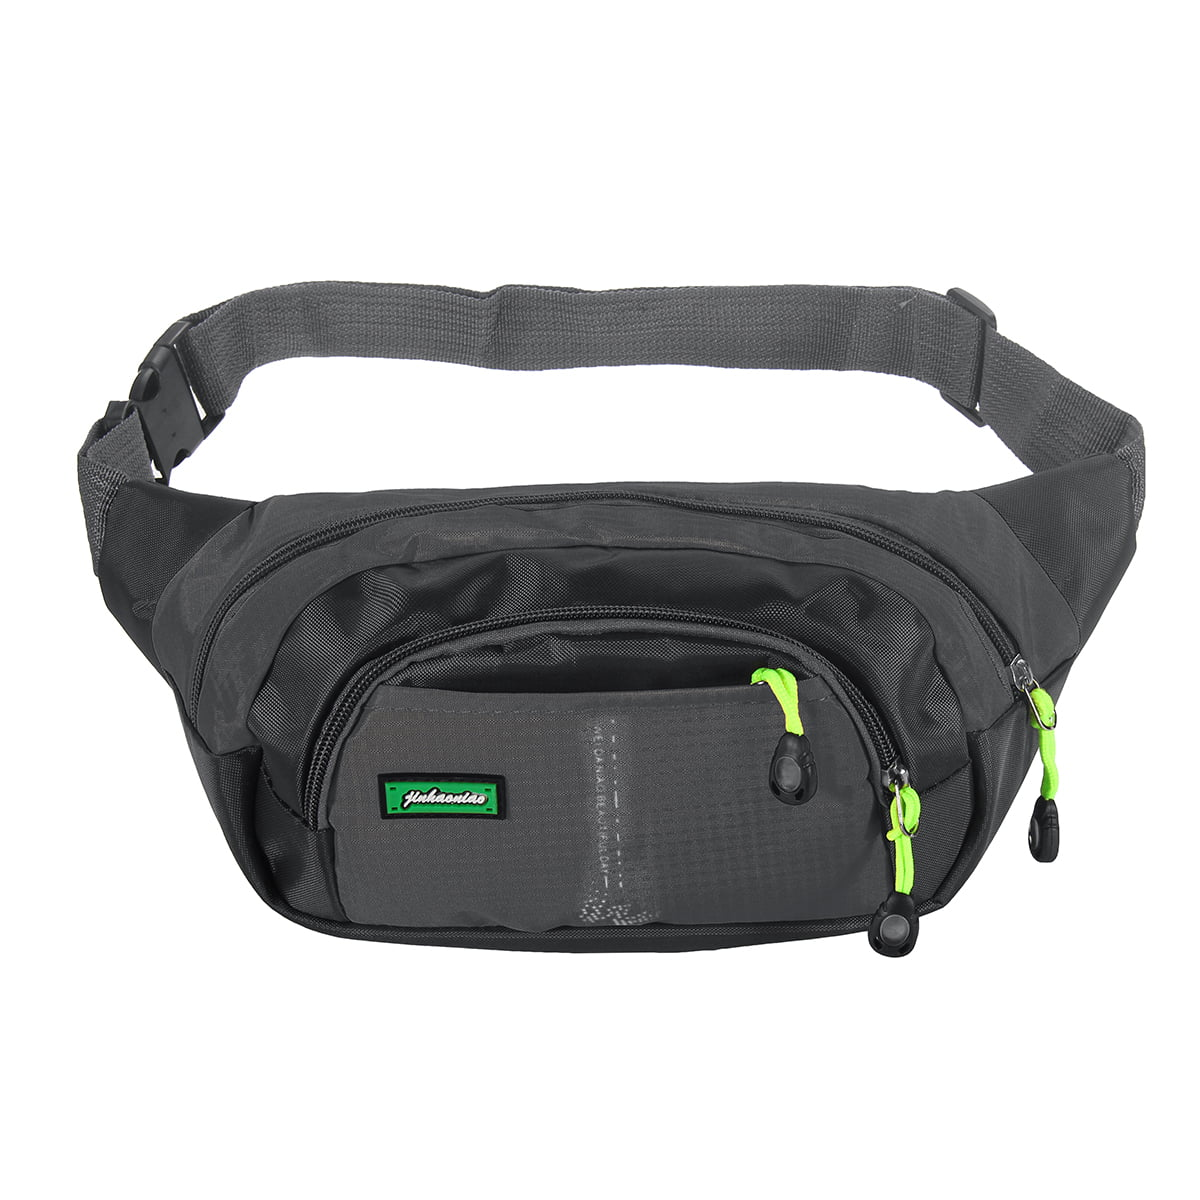 Tennis Man Player Sport Waist Bag Fanny Pack Adjustable For Run